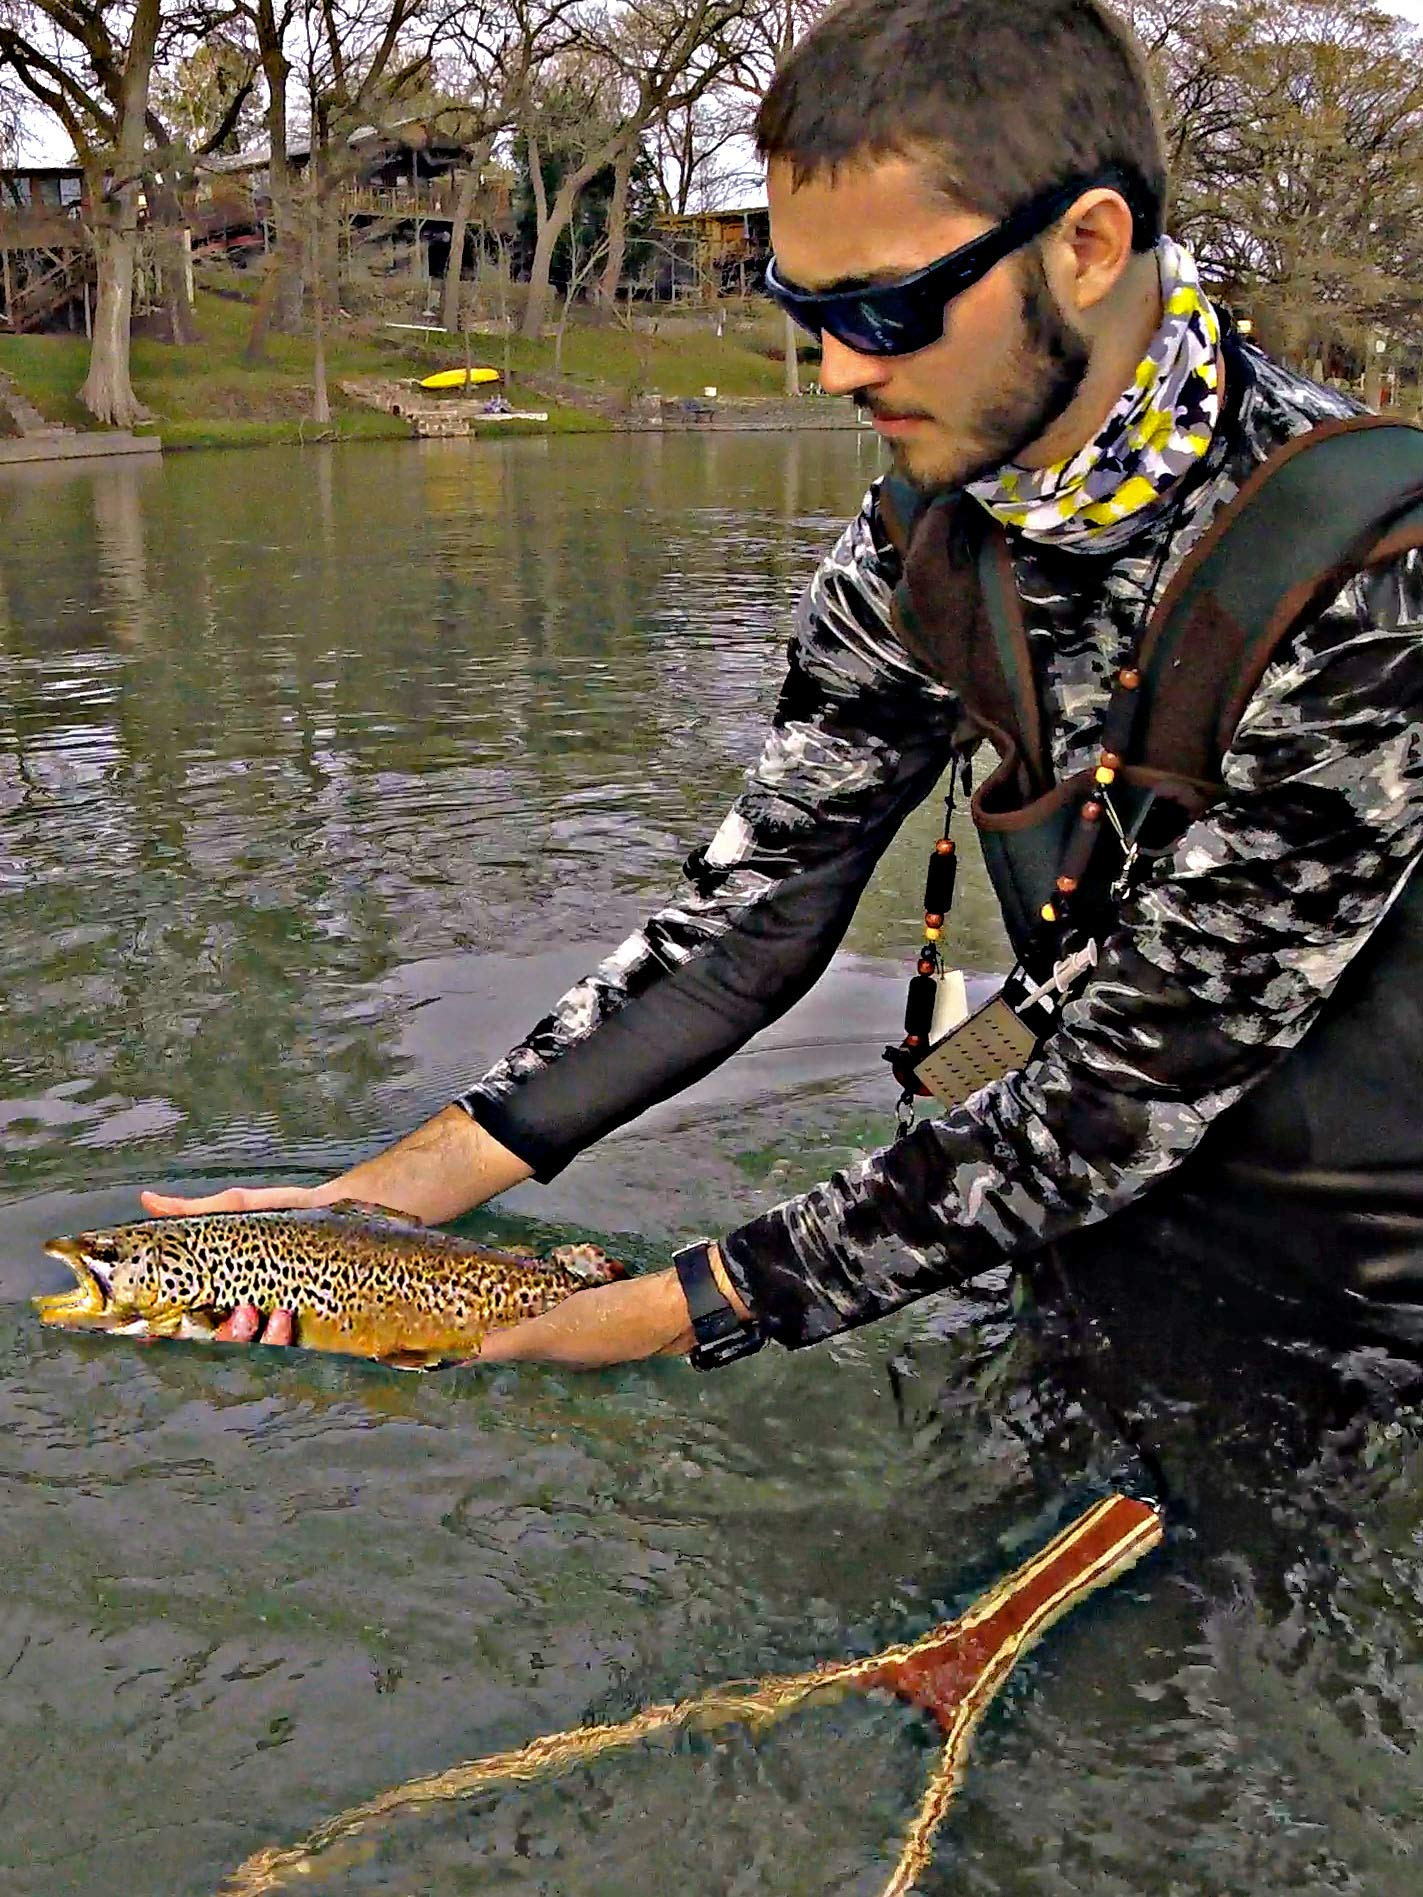 Clip: Fishing the Guadalupe River for My First Texas Brown Trout